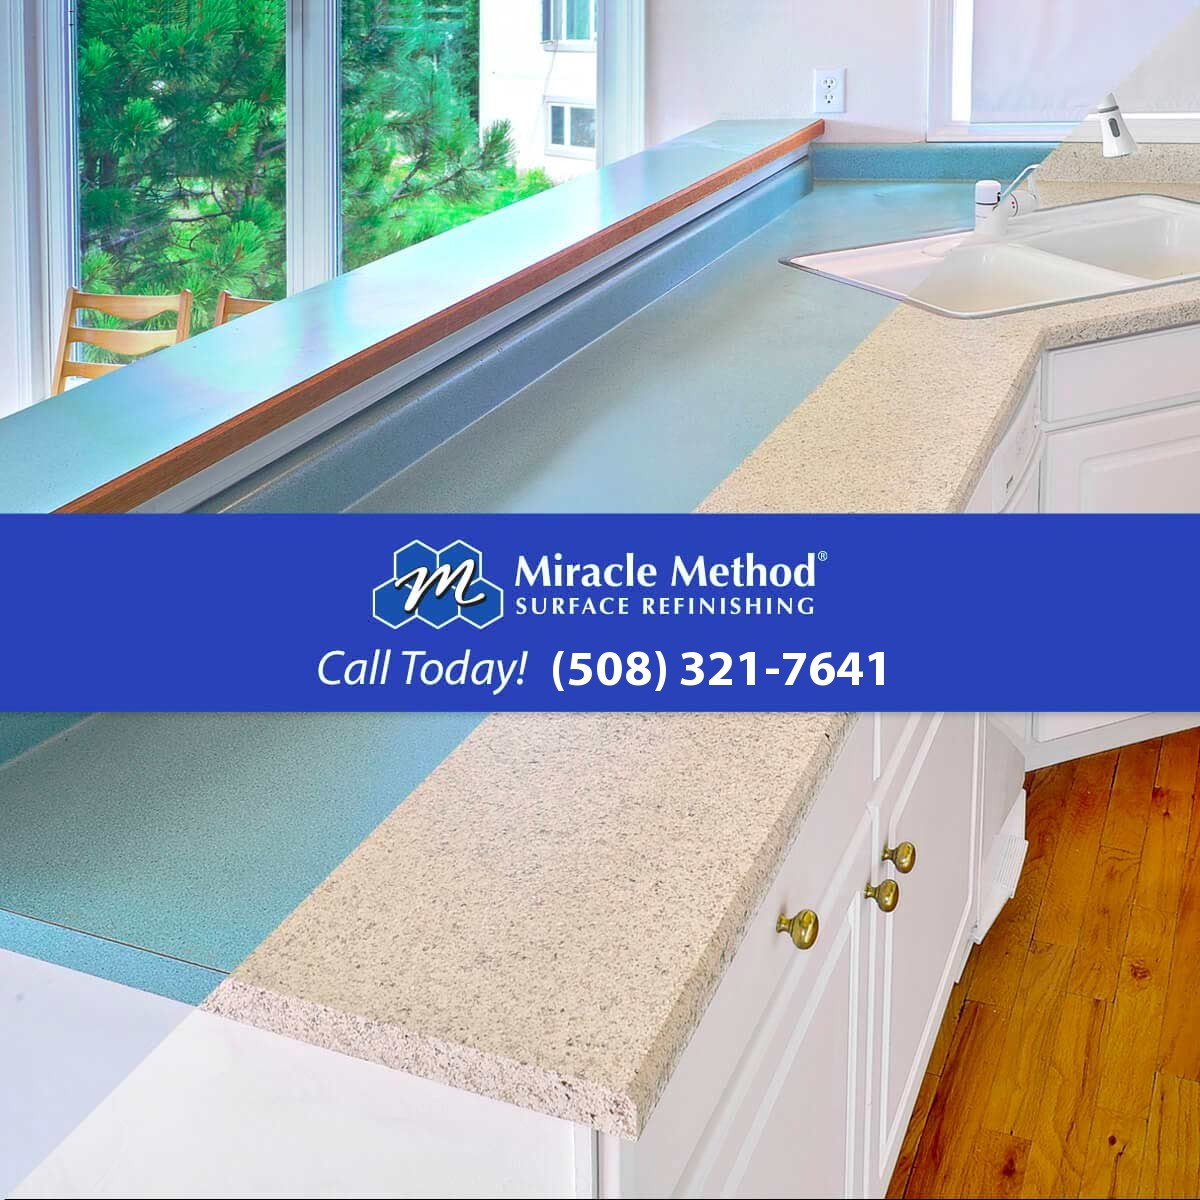 Medford, MA Surface Refinishing & Repair | Miracle Method of Boston ...